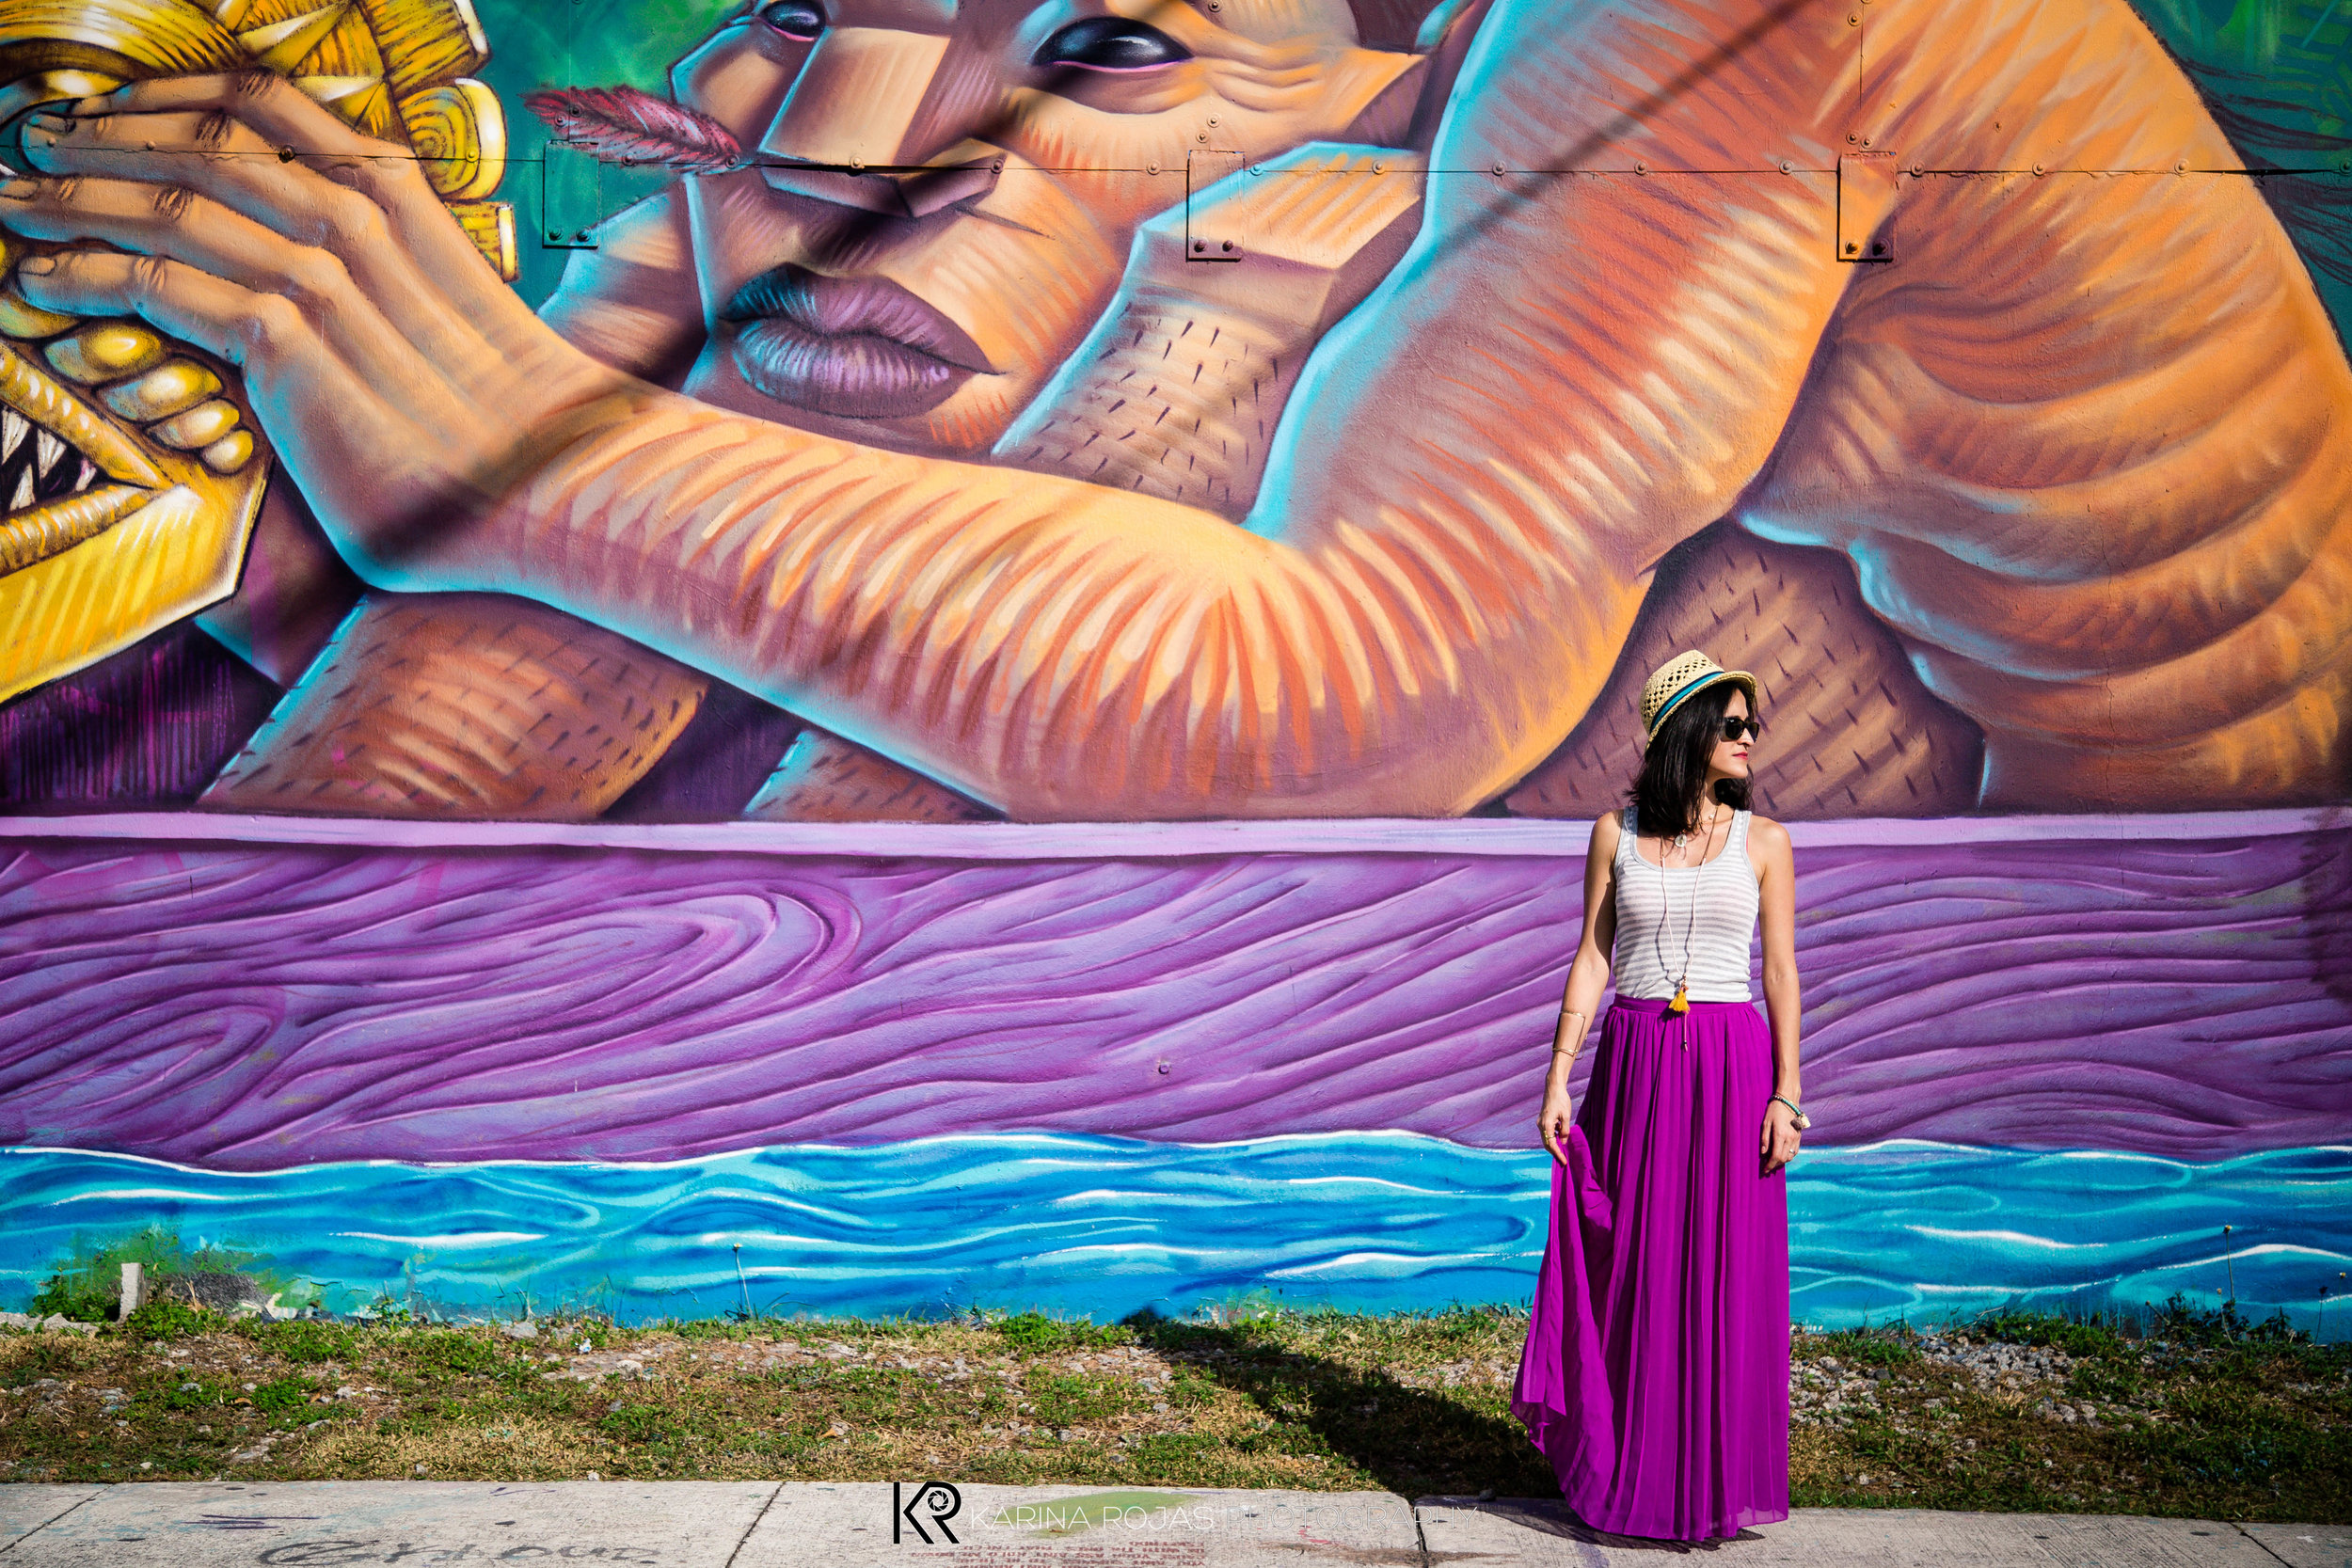 At my old neighborhood of Wynwood, Miami photographed by the best: Karina Rojas.